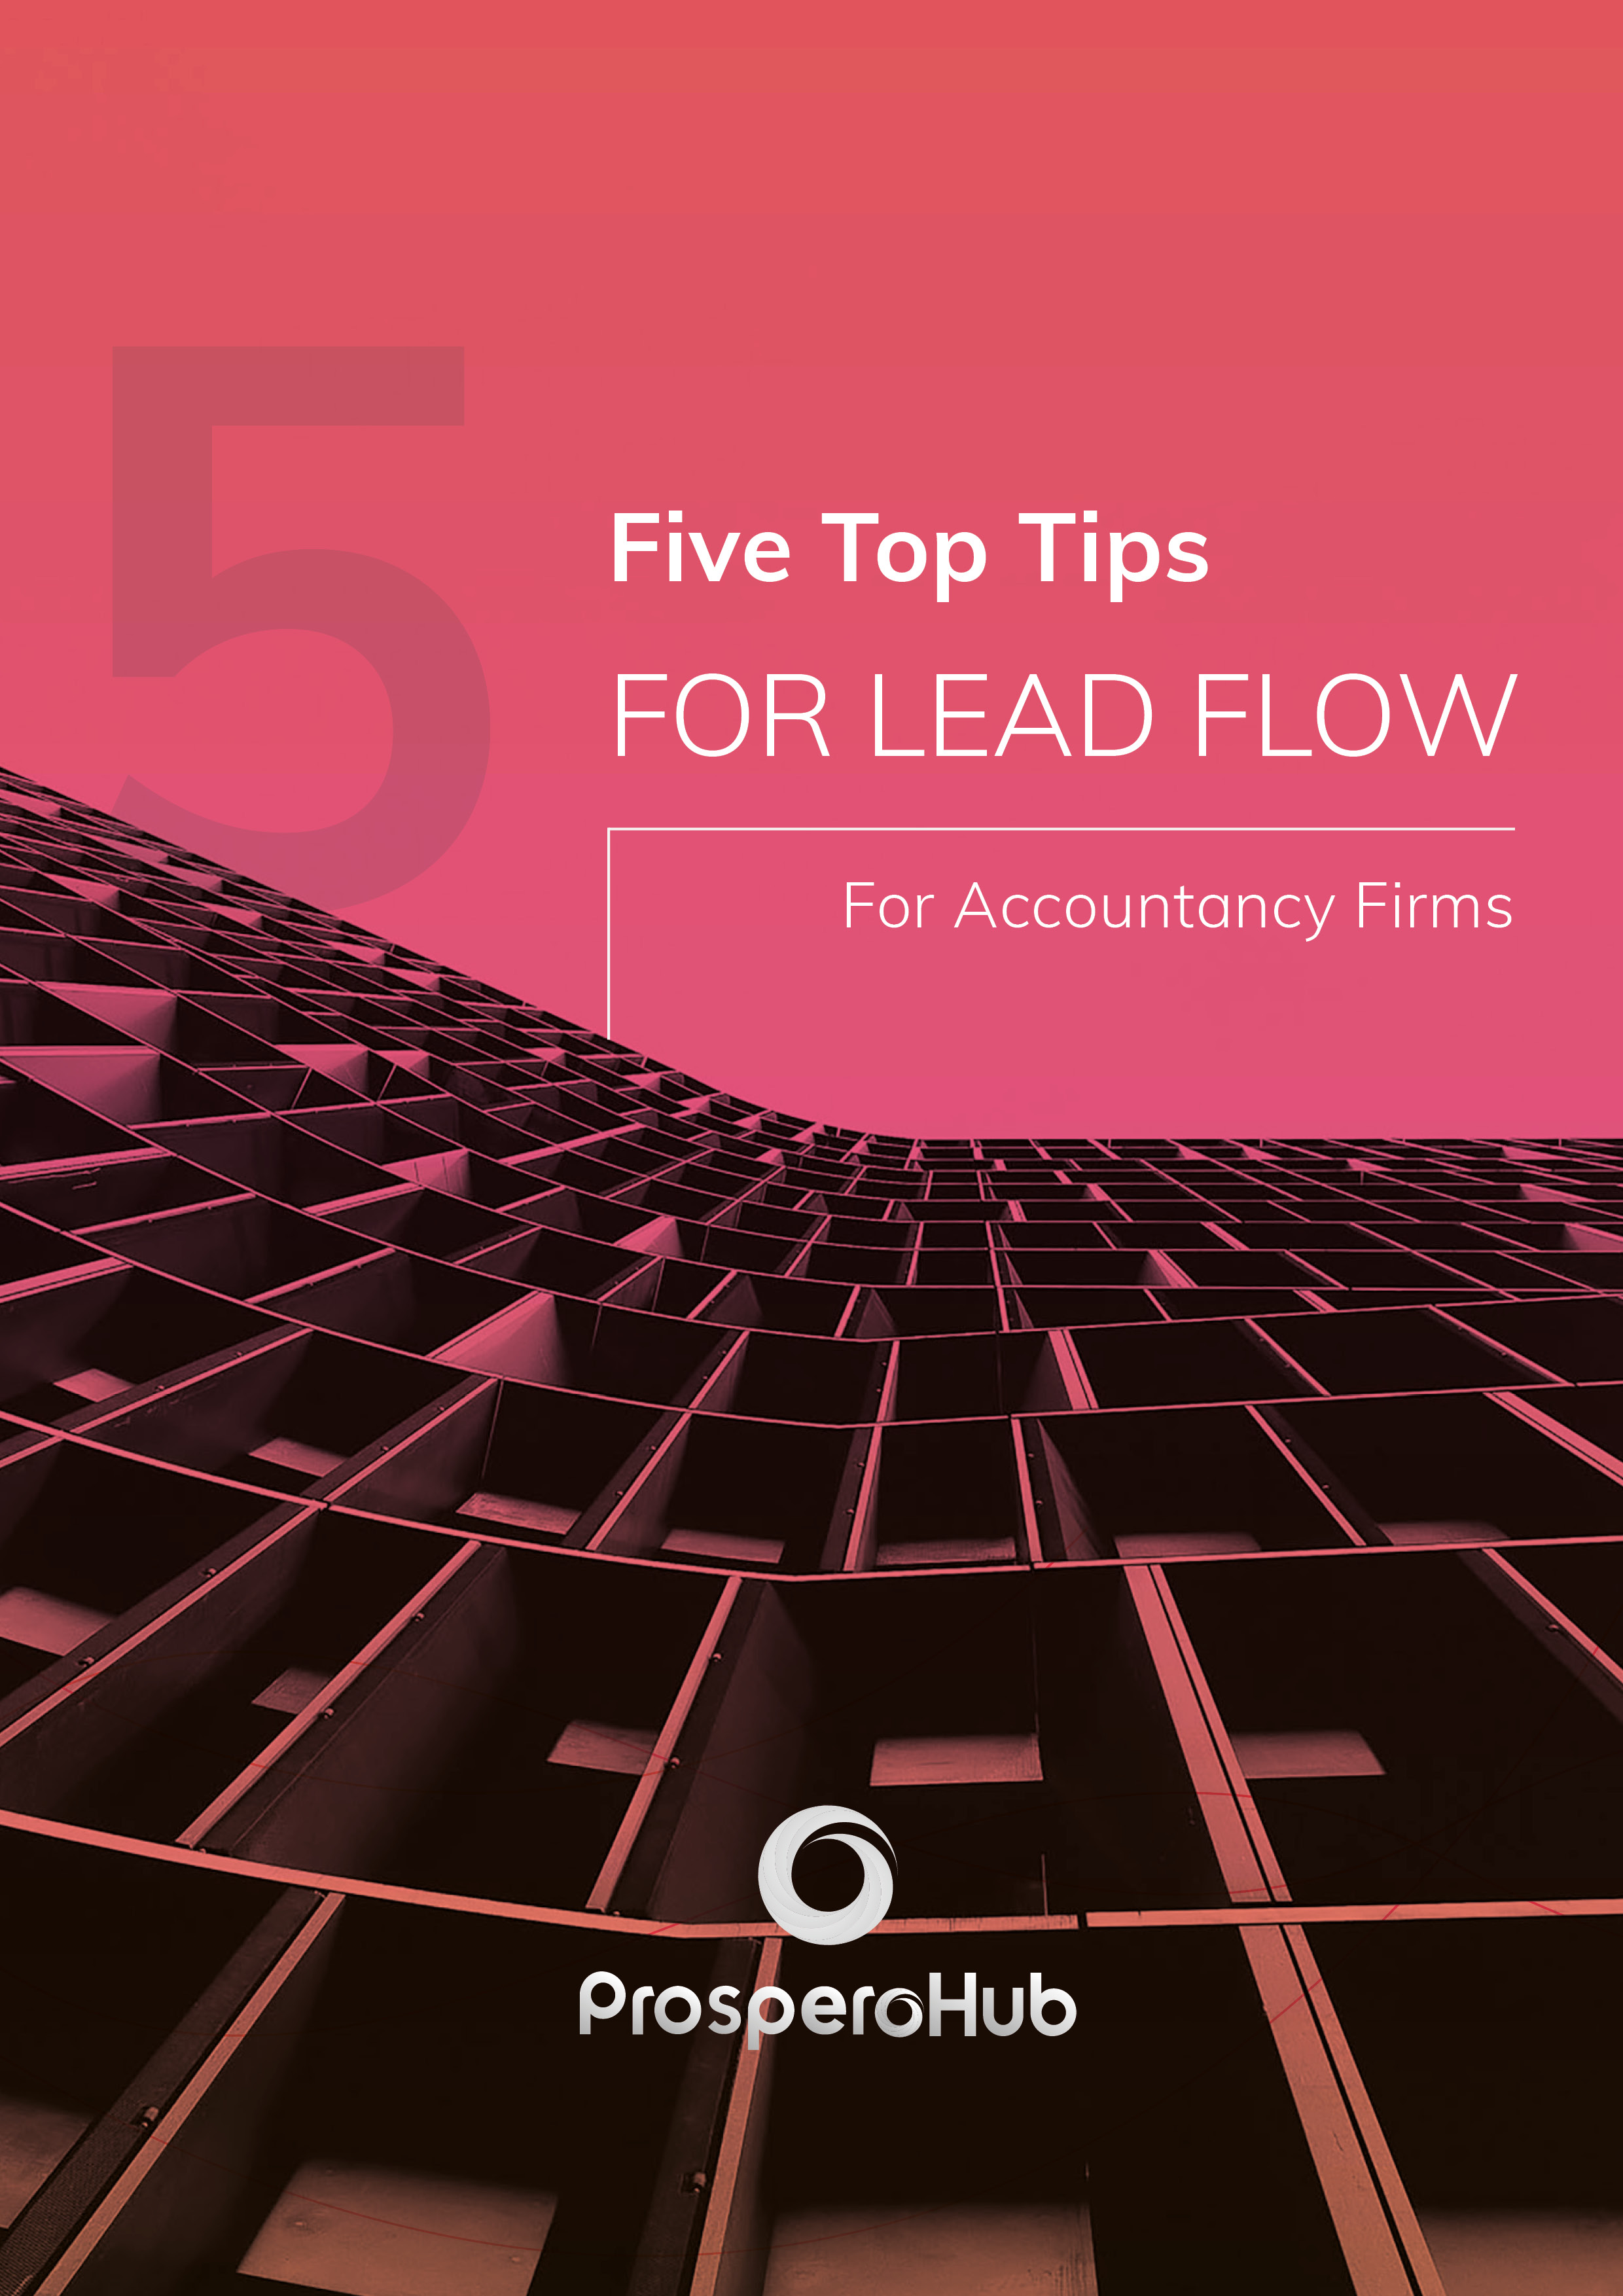 ProsperoHub - eBook - Five Top Tips for Lead Flow for Accountancy Firms